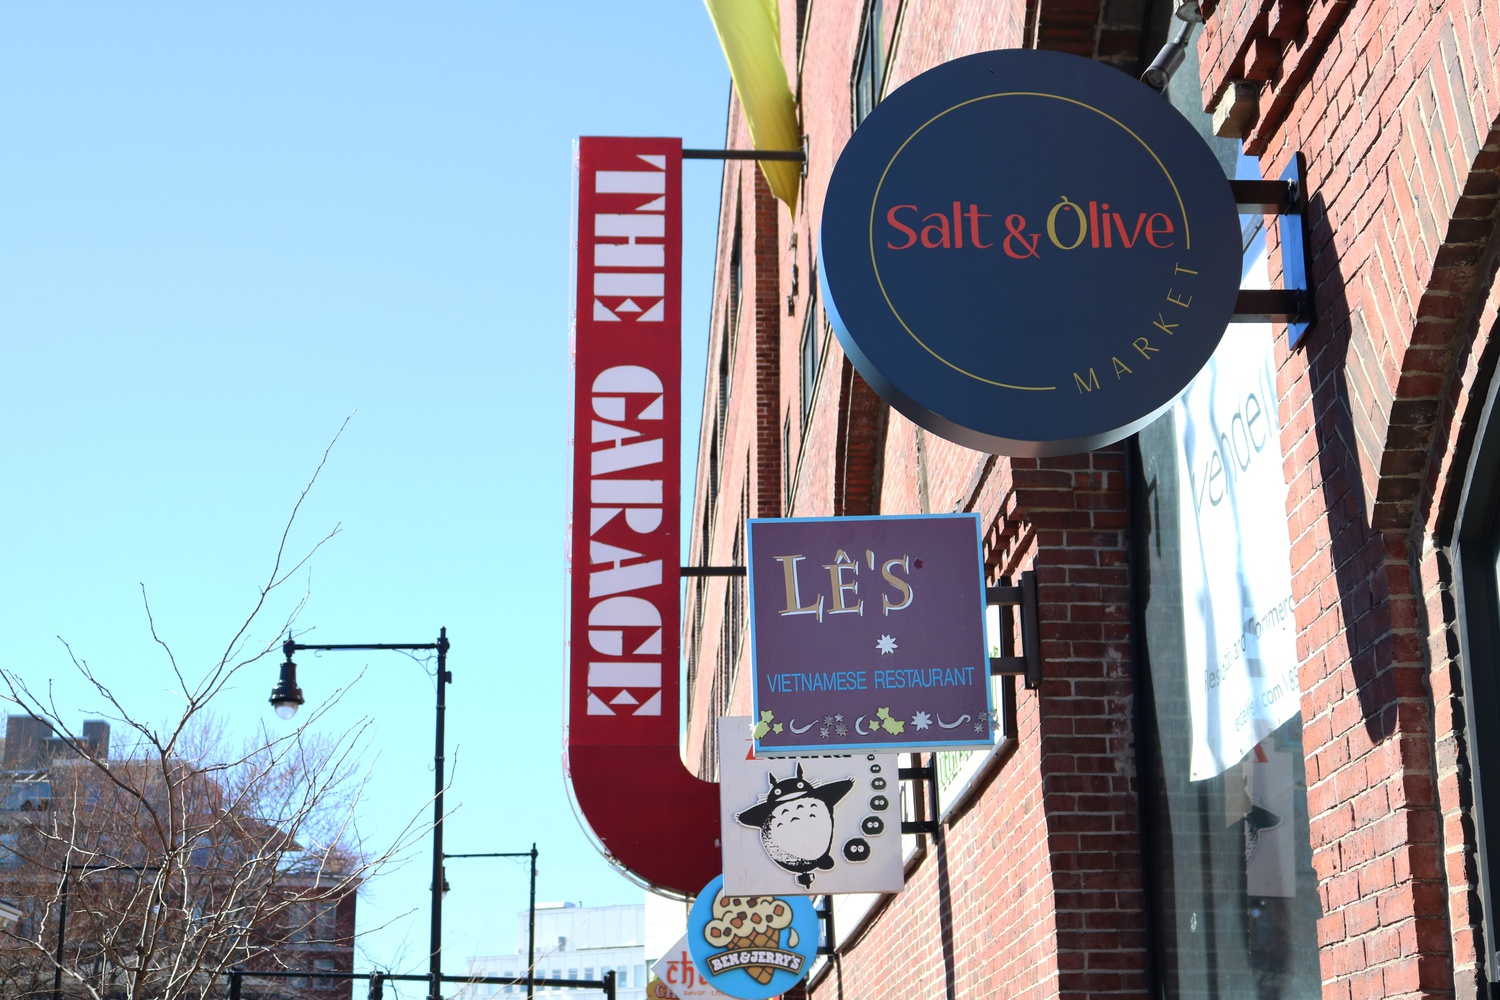 A new sign along Mt. Auburn St. indicates the new opening of Salt and Olive, a Cambridge-based oil, spice, and tea company.